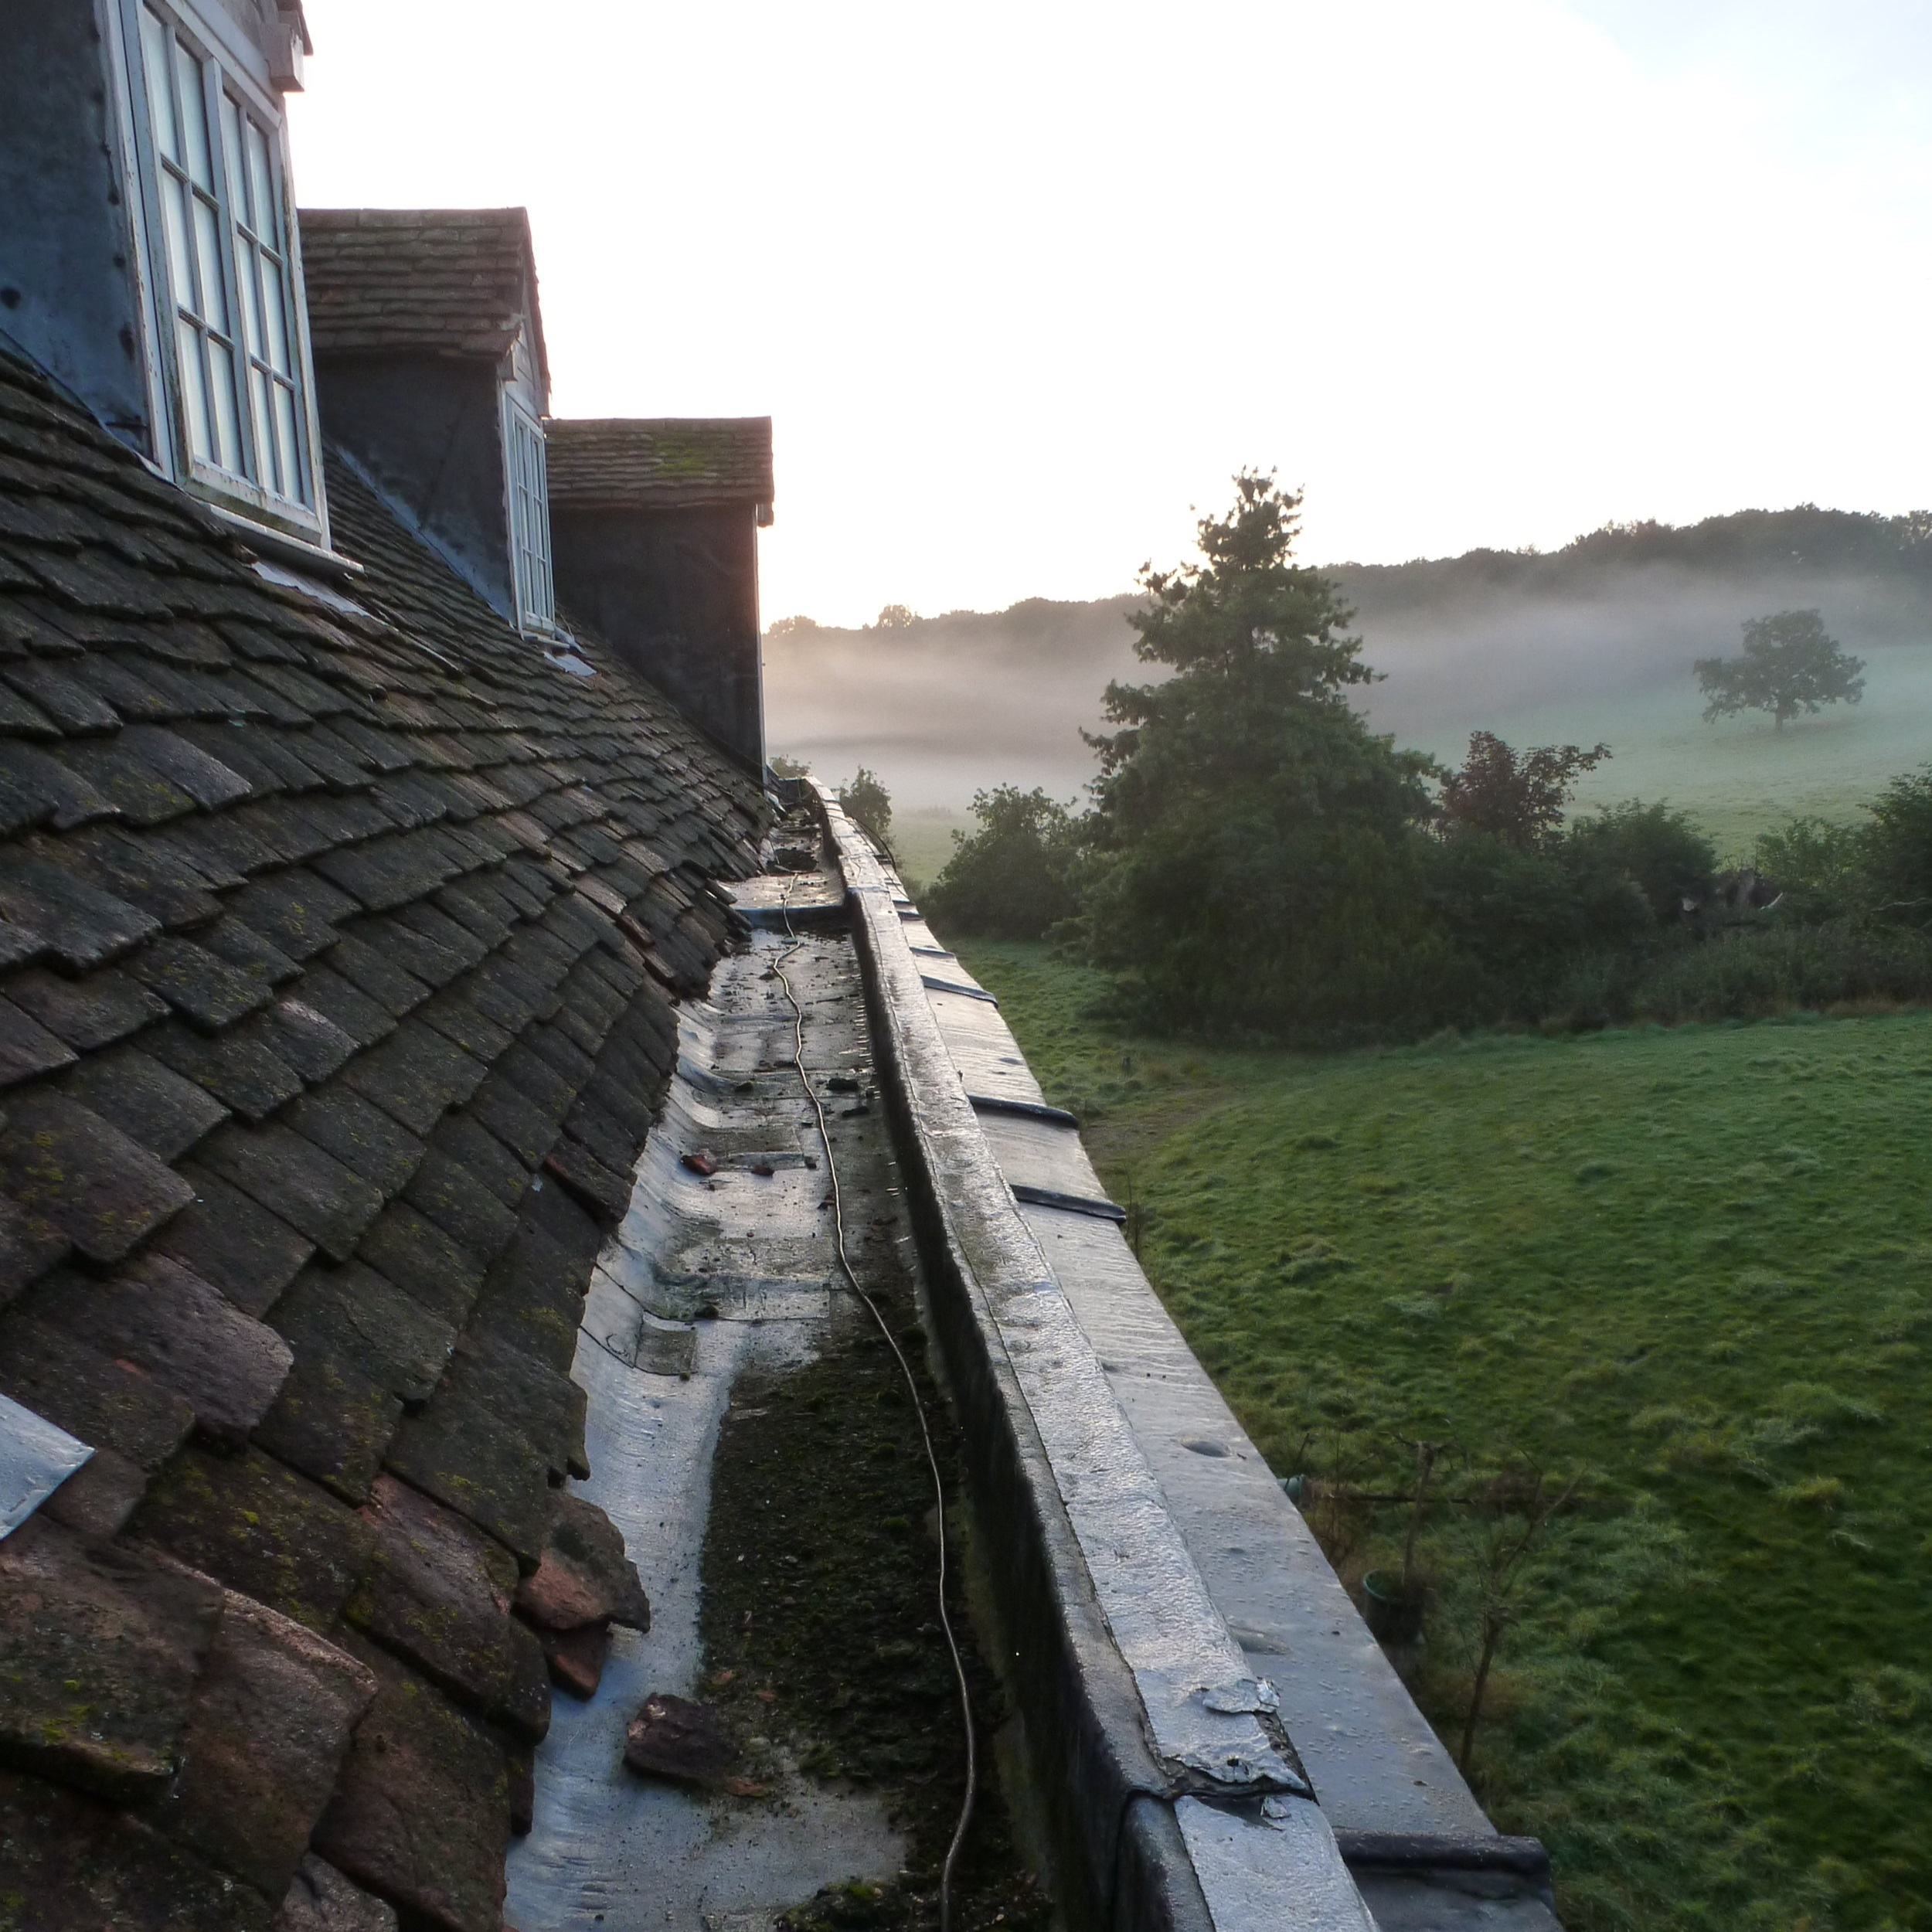 The external parapet gutters were in an extremely poor condition and badly designed from their outset. Many had been replaced with felt, and the lead bays were cracked and in need of repair. The lead drips were too shallow and the bore diameter of the outlets meant that rainwater was backing up and entering the roof beneath the leadwork. The parapet is constructed from 50x50mm battens and was not structurally sound.